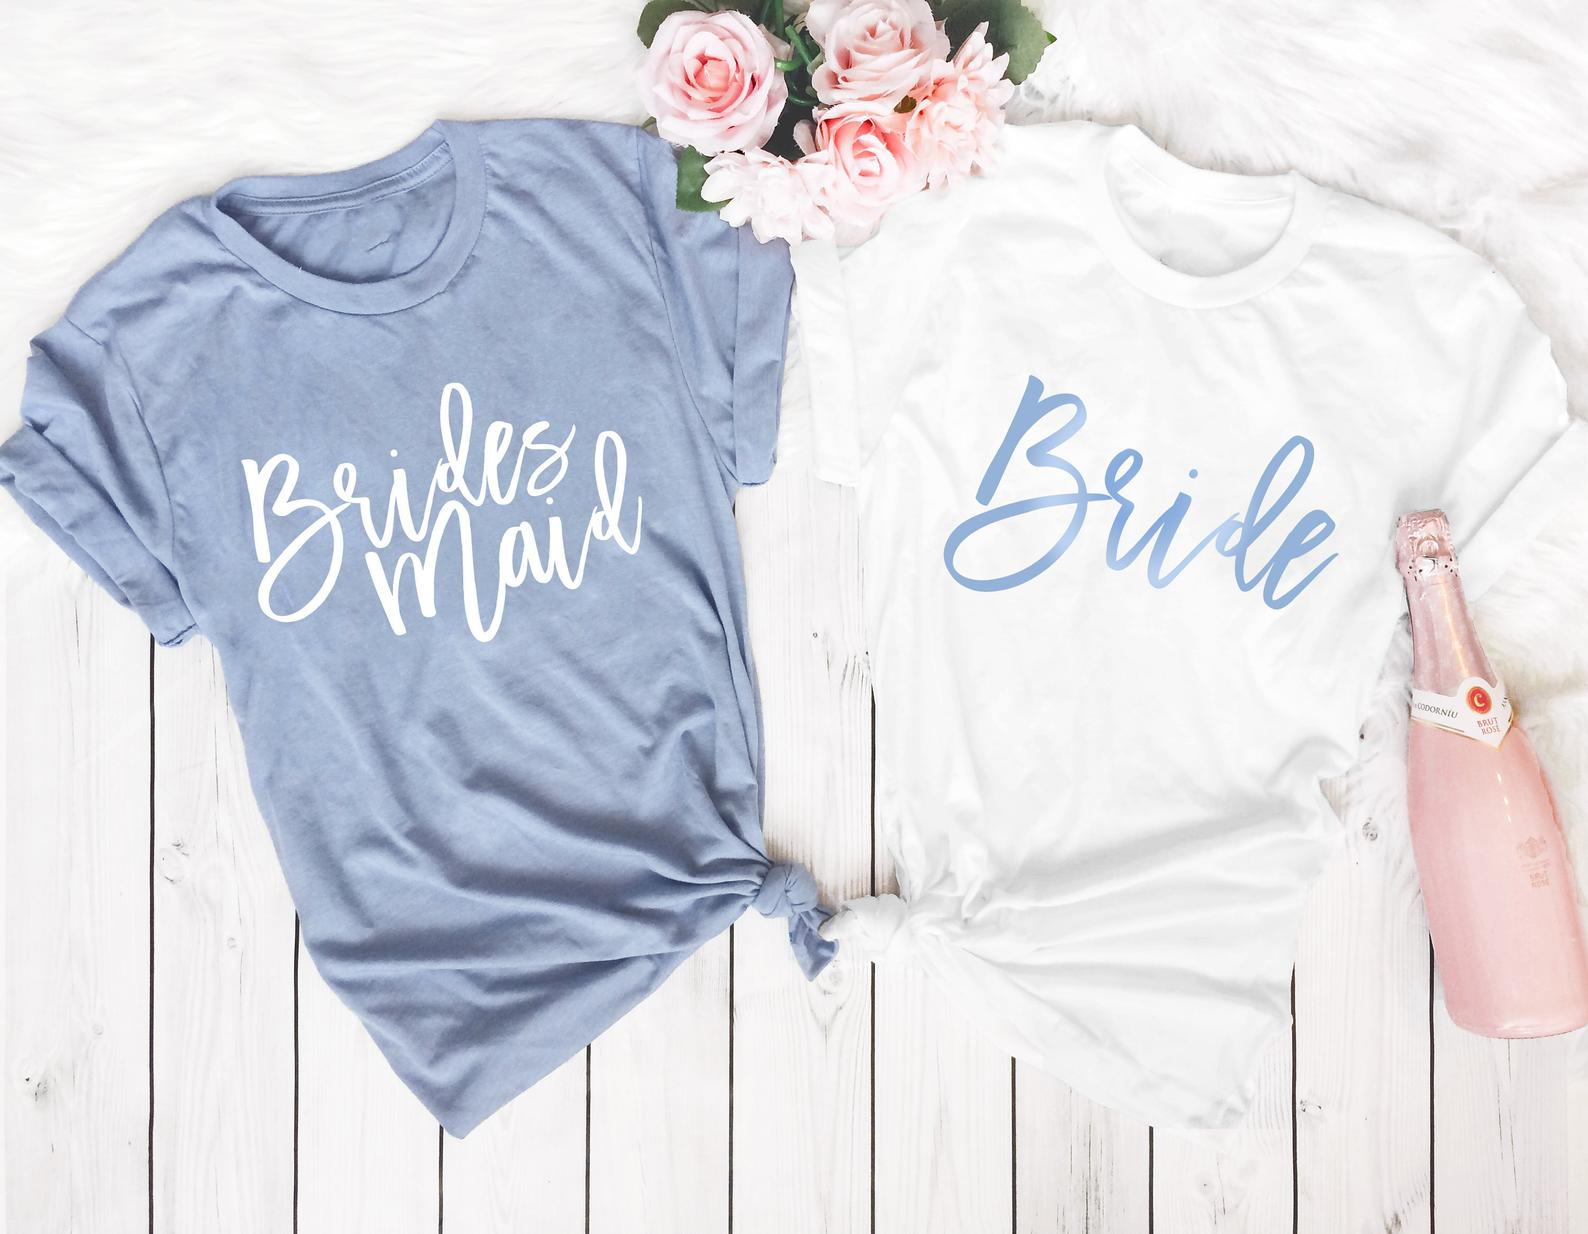 Super cute bridesmaid gift ideas featured on Nashville Bride Guide